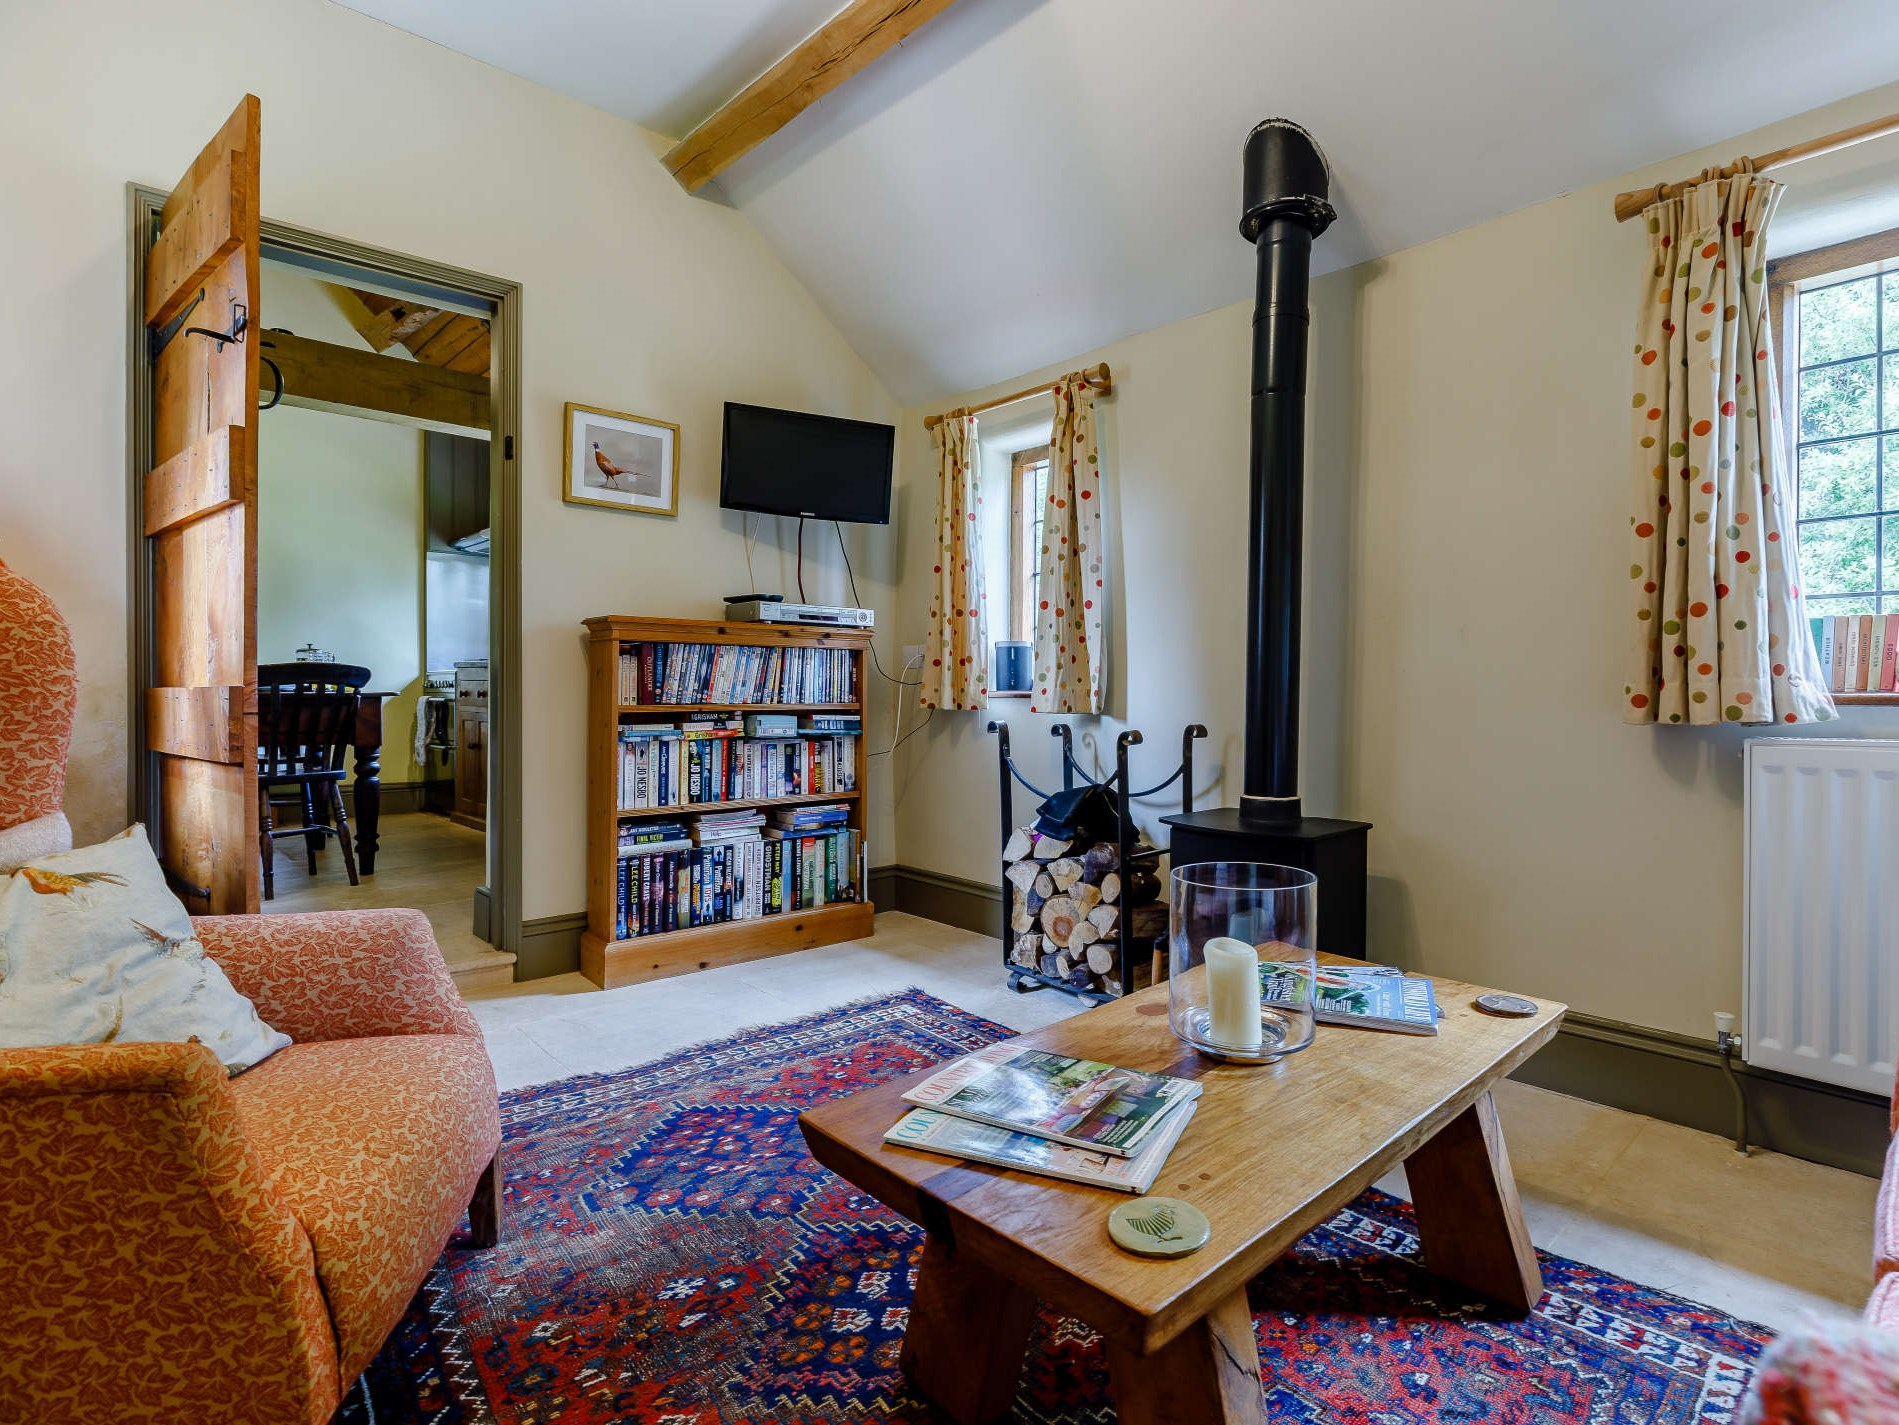 1 Bedroom Cottage in Gloucester, Heart of England